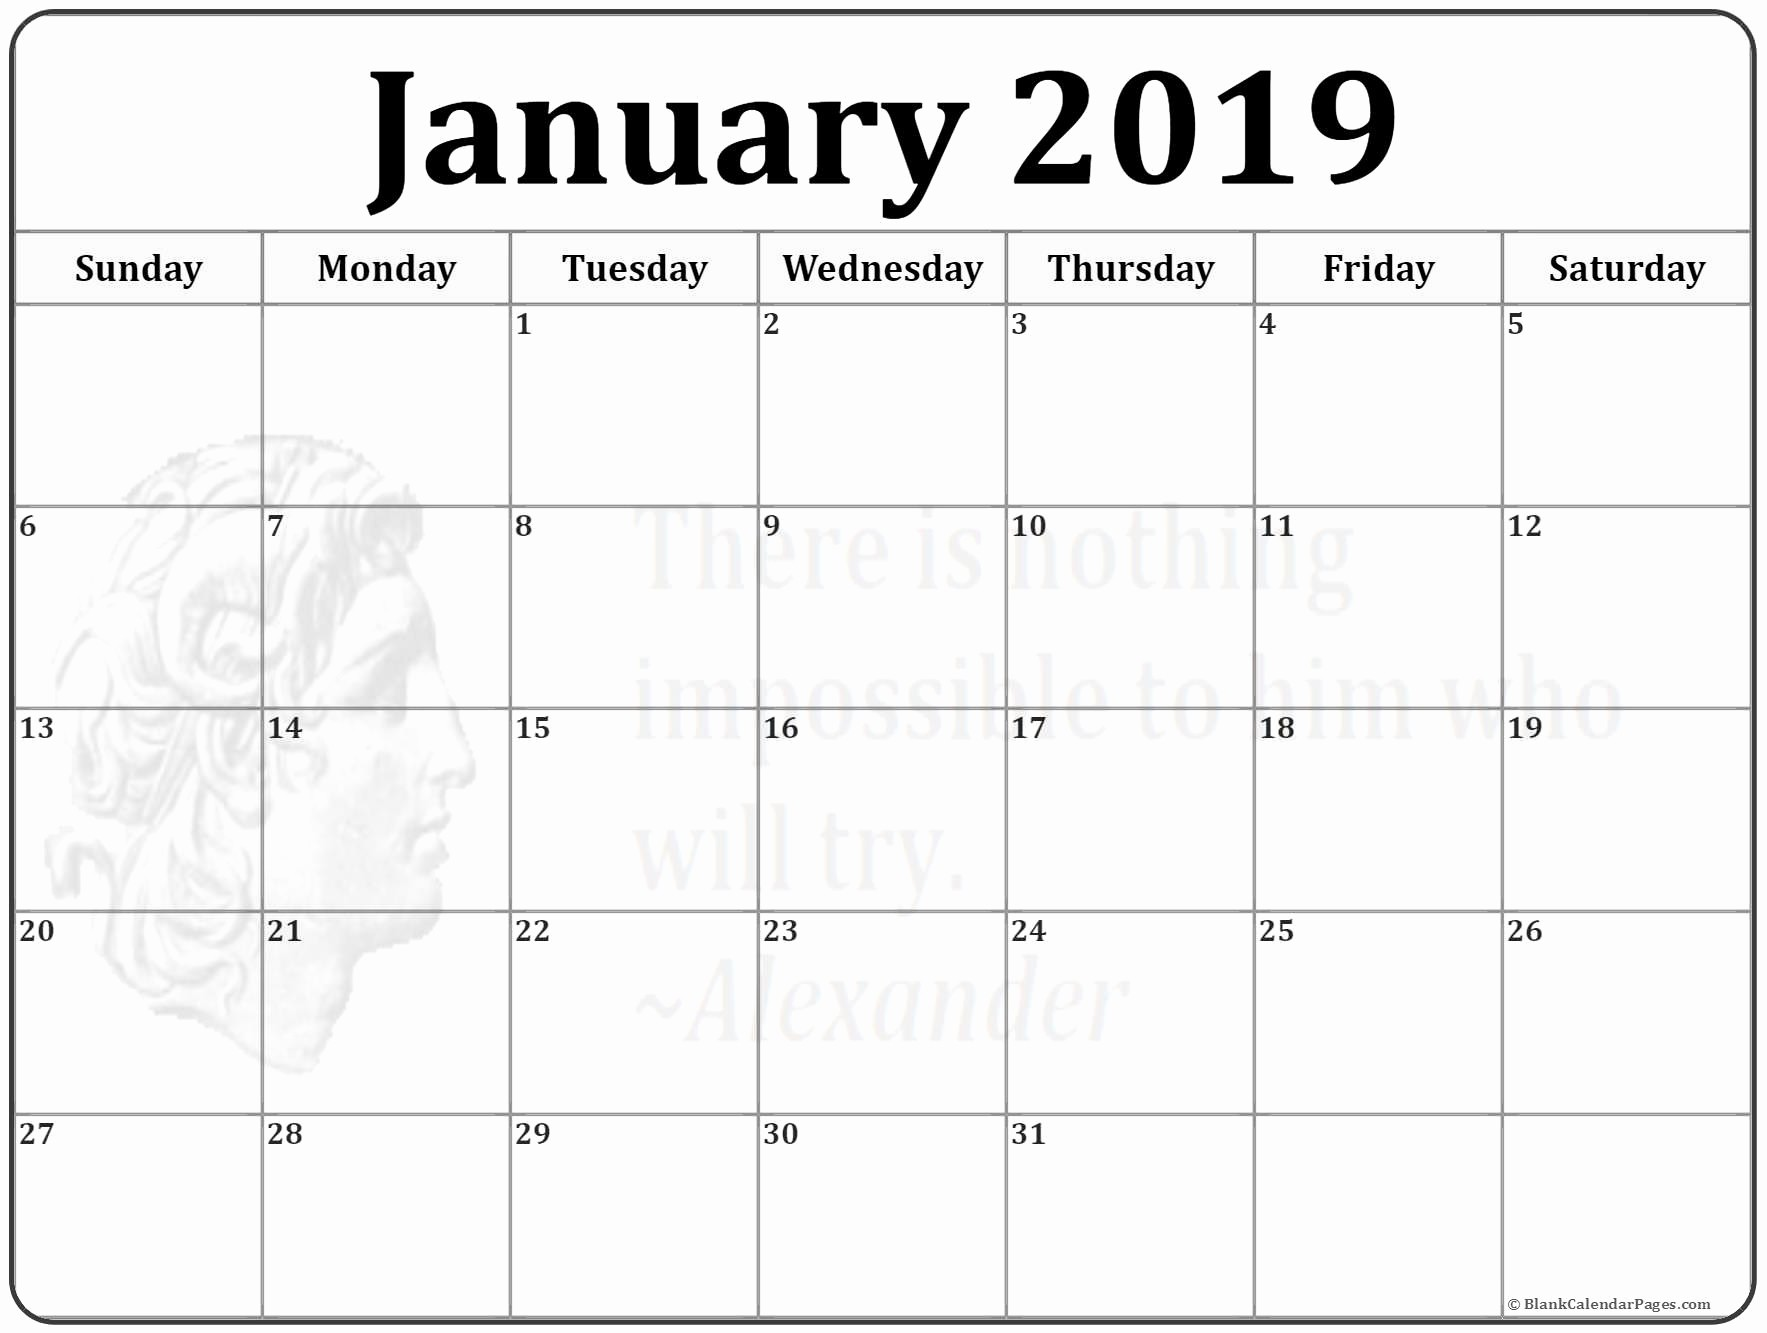 Blank January 2019 Calendar Template New January 2019 Calendar